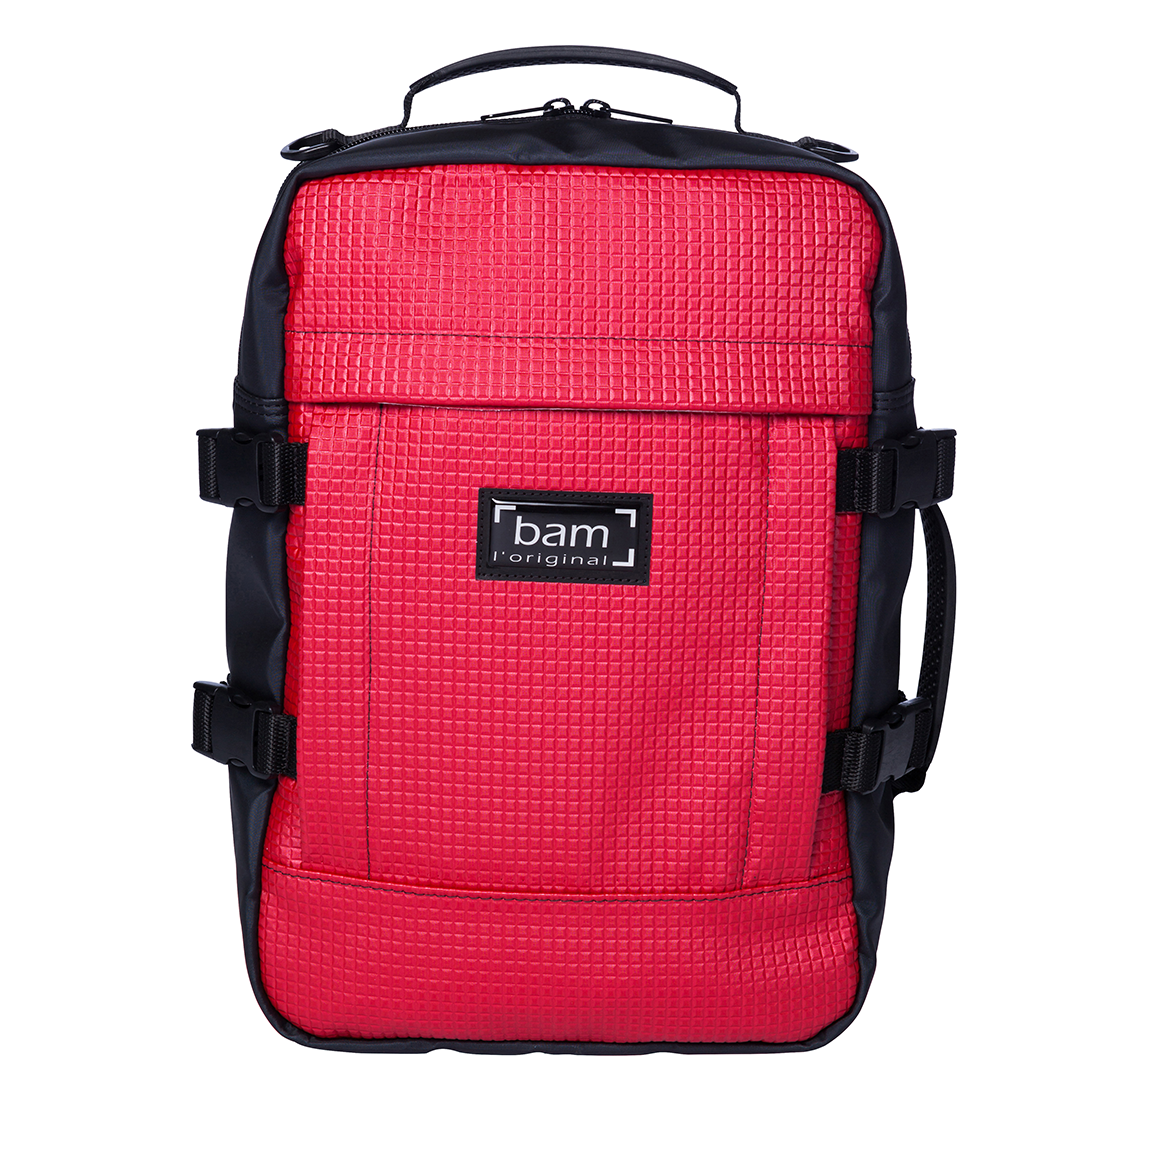 Bam - A+ Backpacks for Hightech Cases-Case-Bam-Red-Music Elements